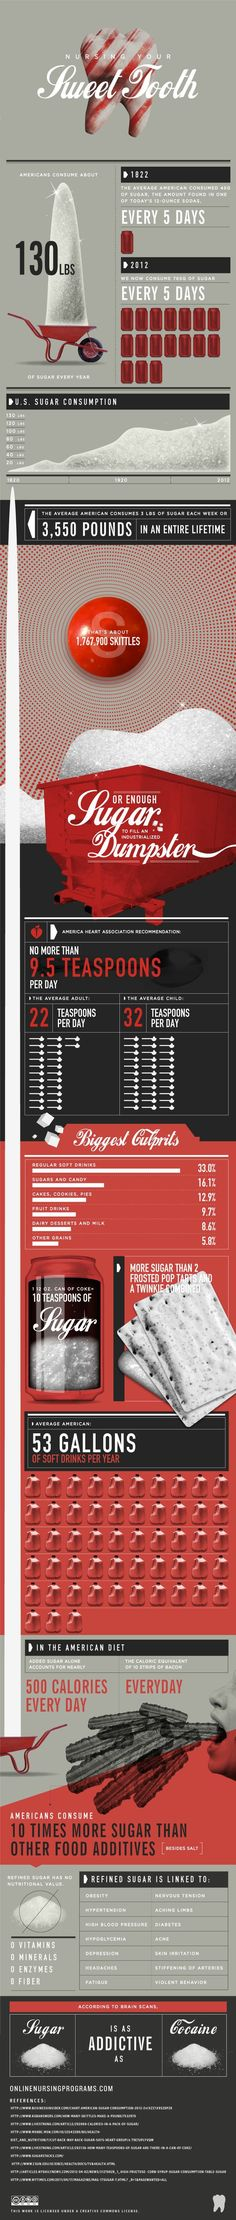 Nursing Your Sweet Tooth  Source: Online Nursing Programs  Everyone knows that excessive amounts of sugar is bad for you. But do you really know how much sugar you're eating? Sugar has started to take over everything we eat, as evidenced by how much more sugar we consume now than people did a hundred years ago. This cool infographic shows just some of the facts about sugar intake today.